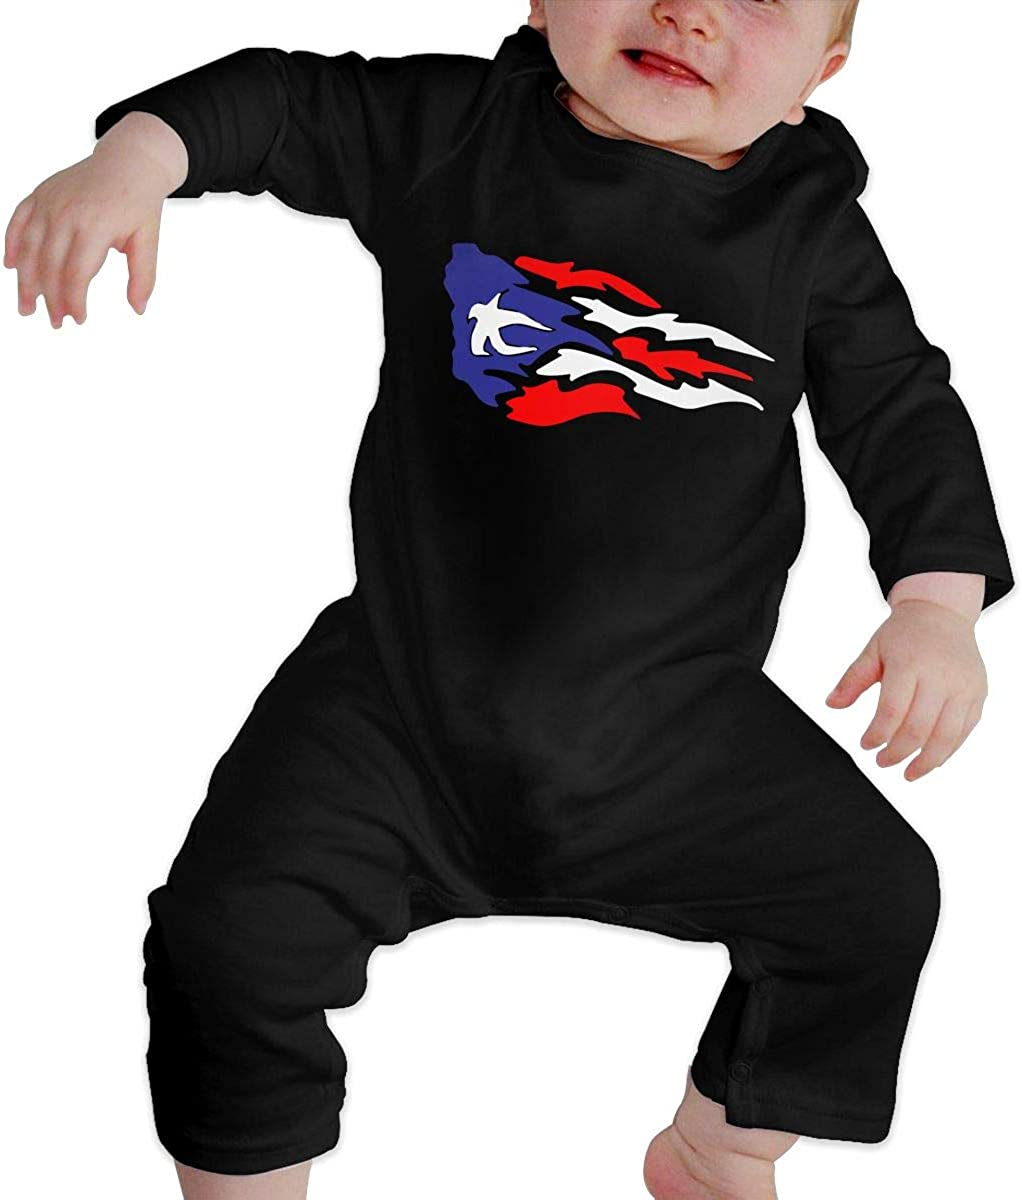 Puerto Rico Flag Organic One-Piece Bodysuits Coverall Outfits Toddler Baby Boy Romper Jumpsuit